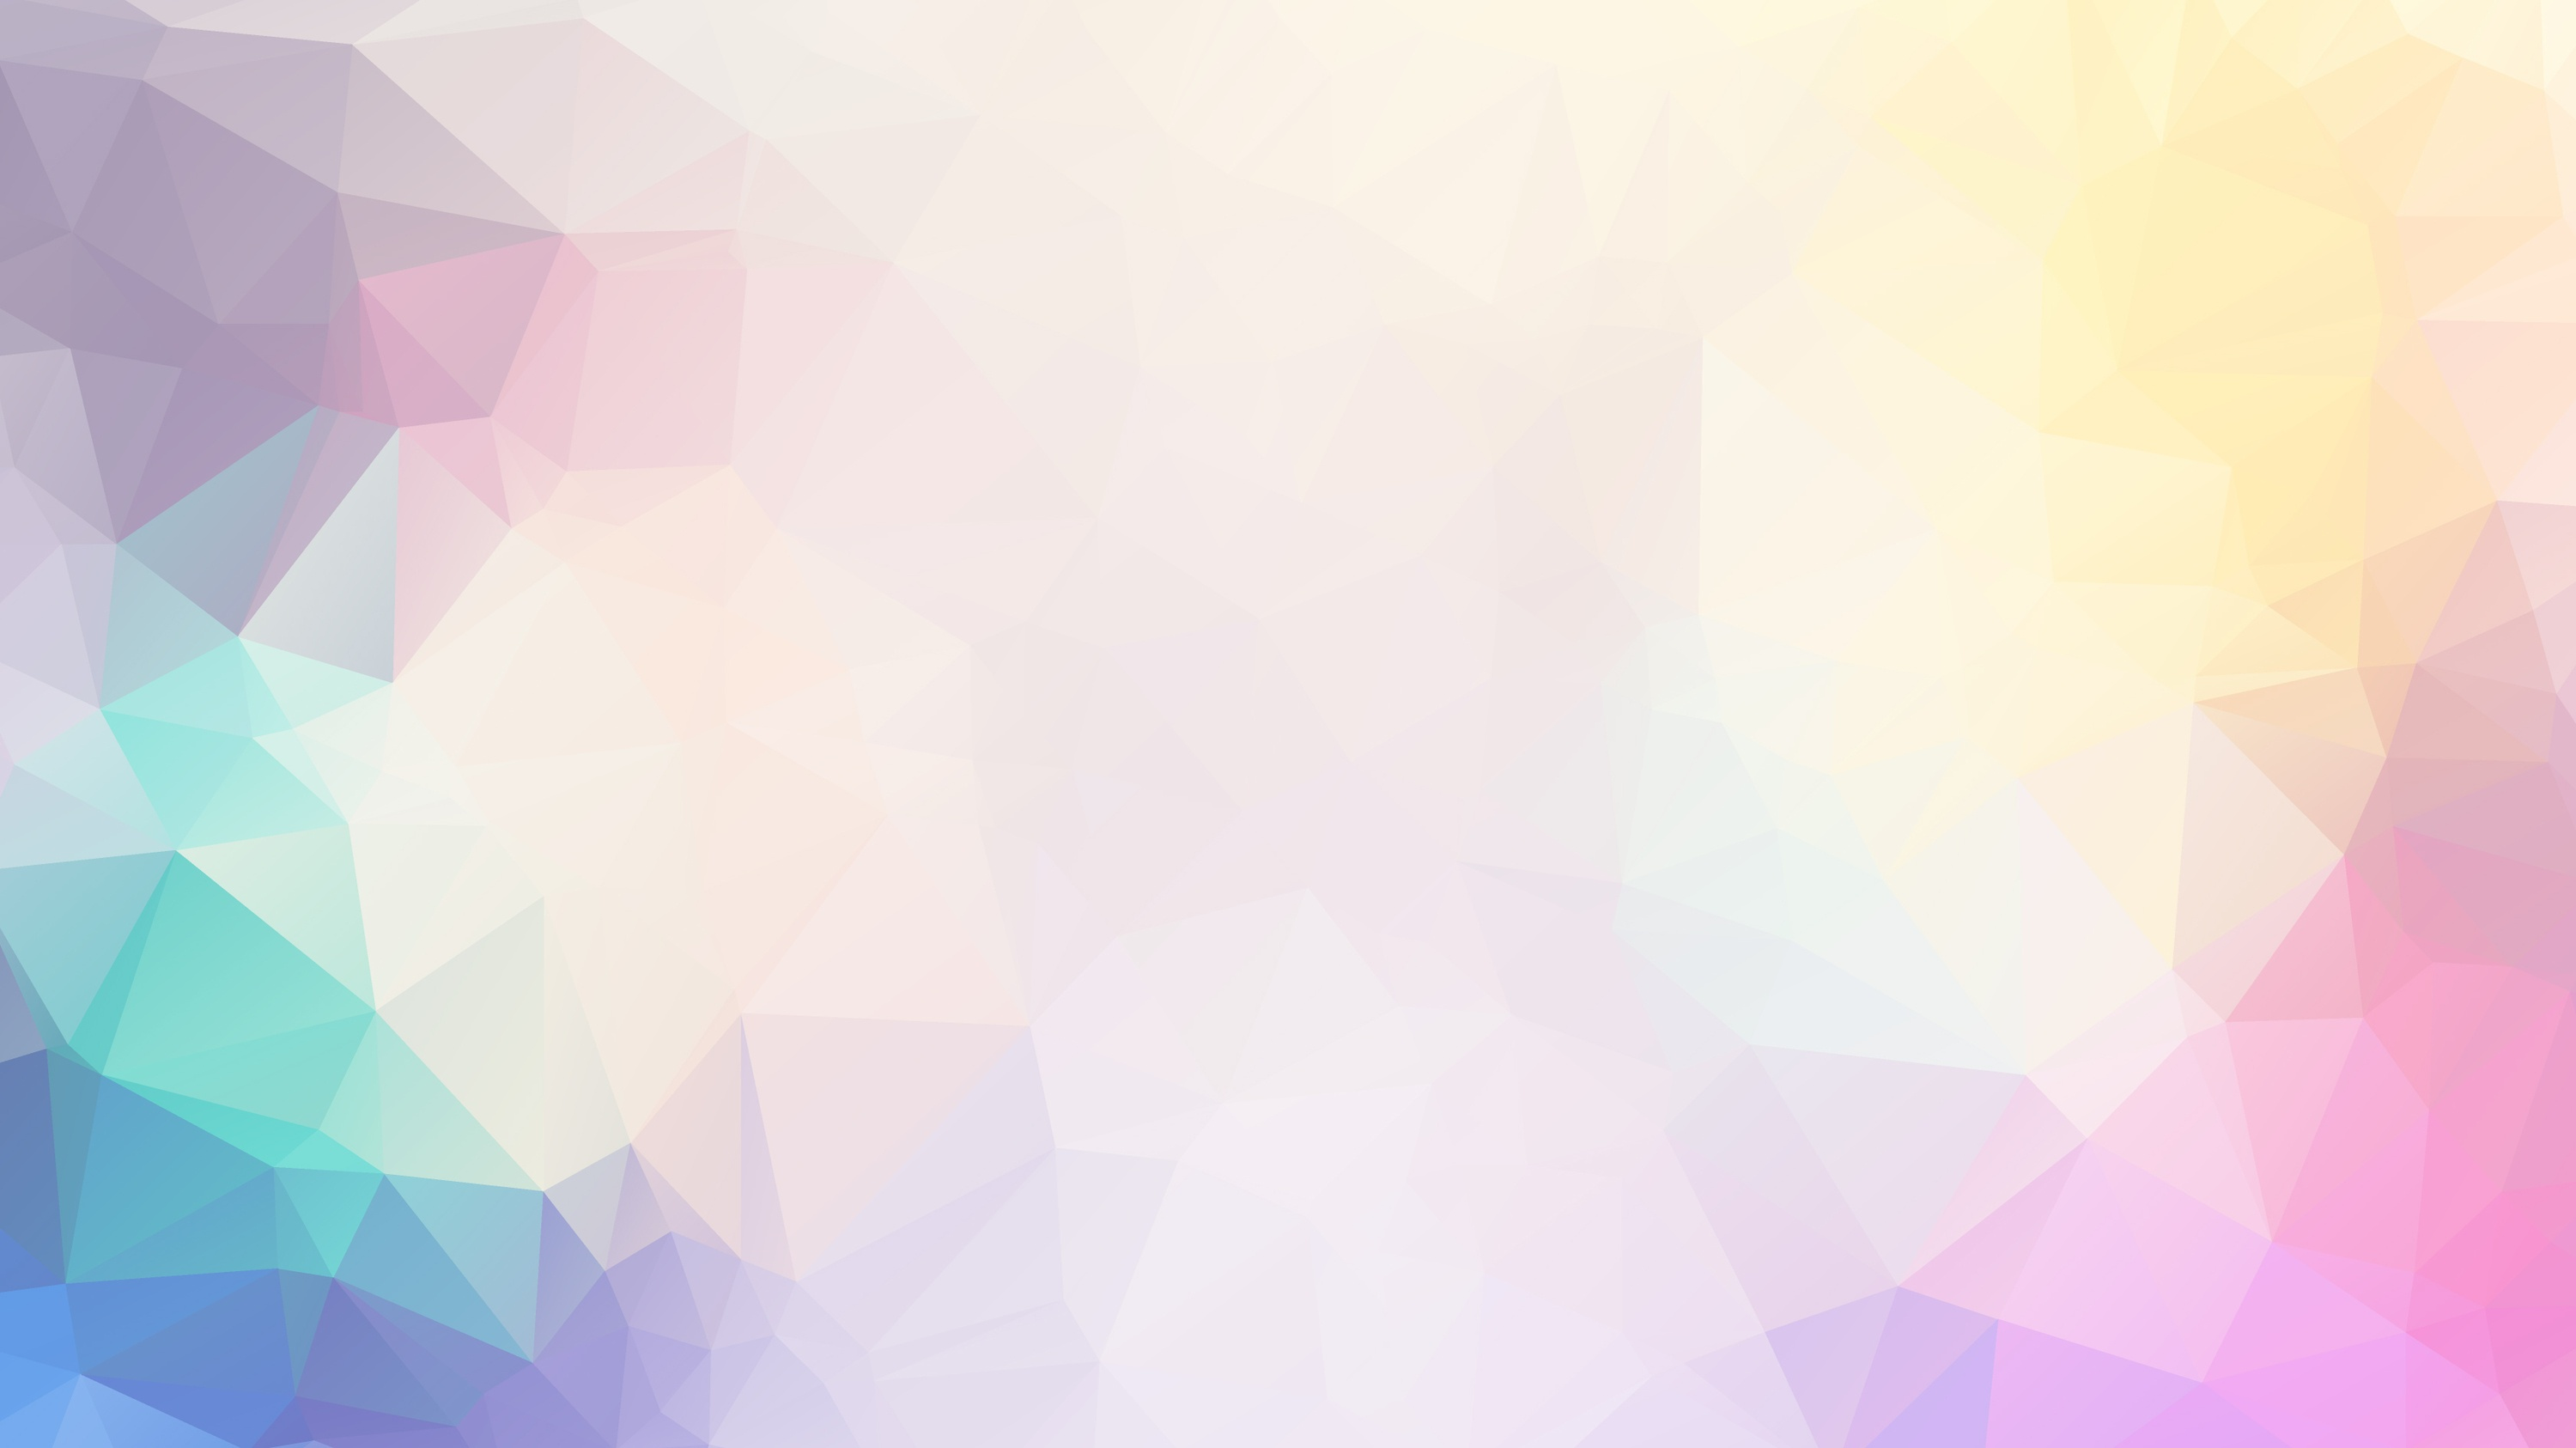 bigstock-Polygonal-Abstract-Background--187364575.jpg